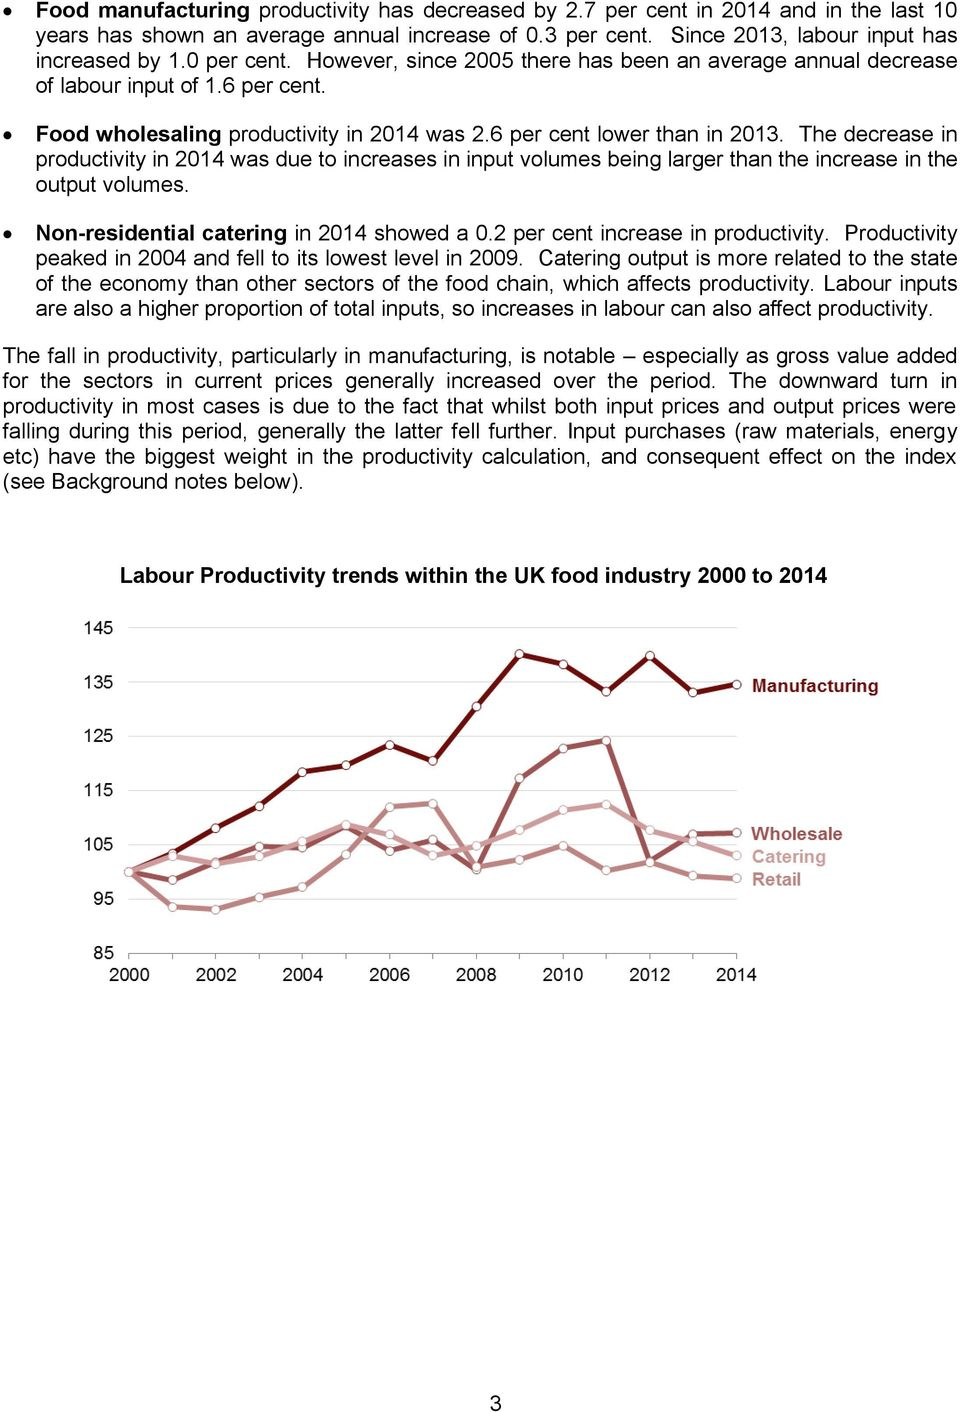 The decrease in productivity in 2014 was due to increases in input volumes being larger than the increase in the output volumes. Non-residential catering in 2014 showed a 0.